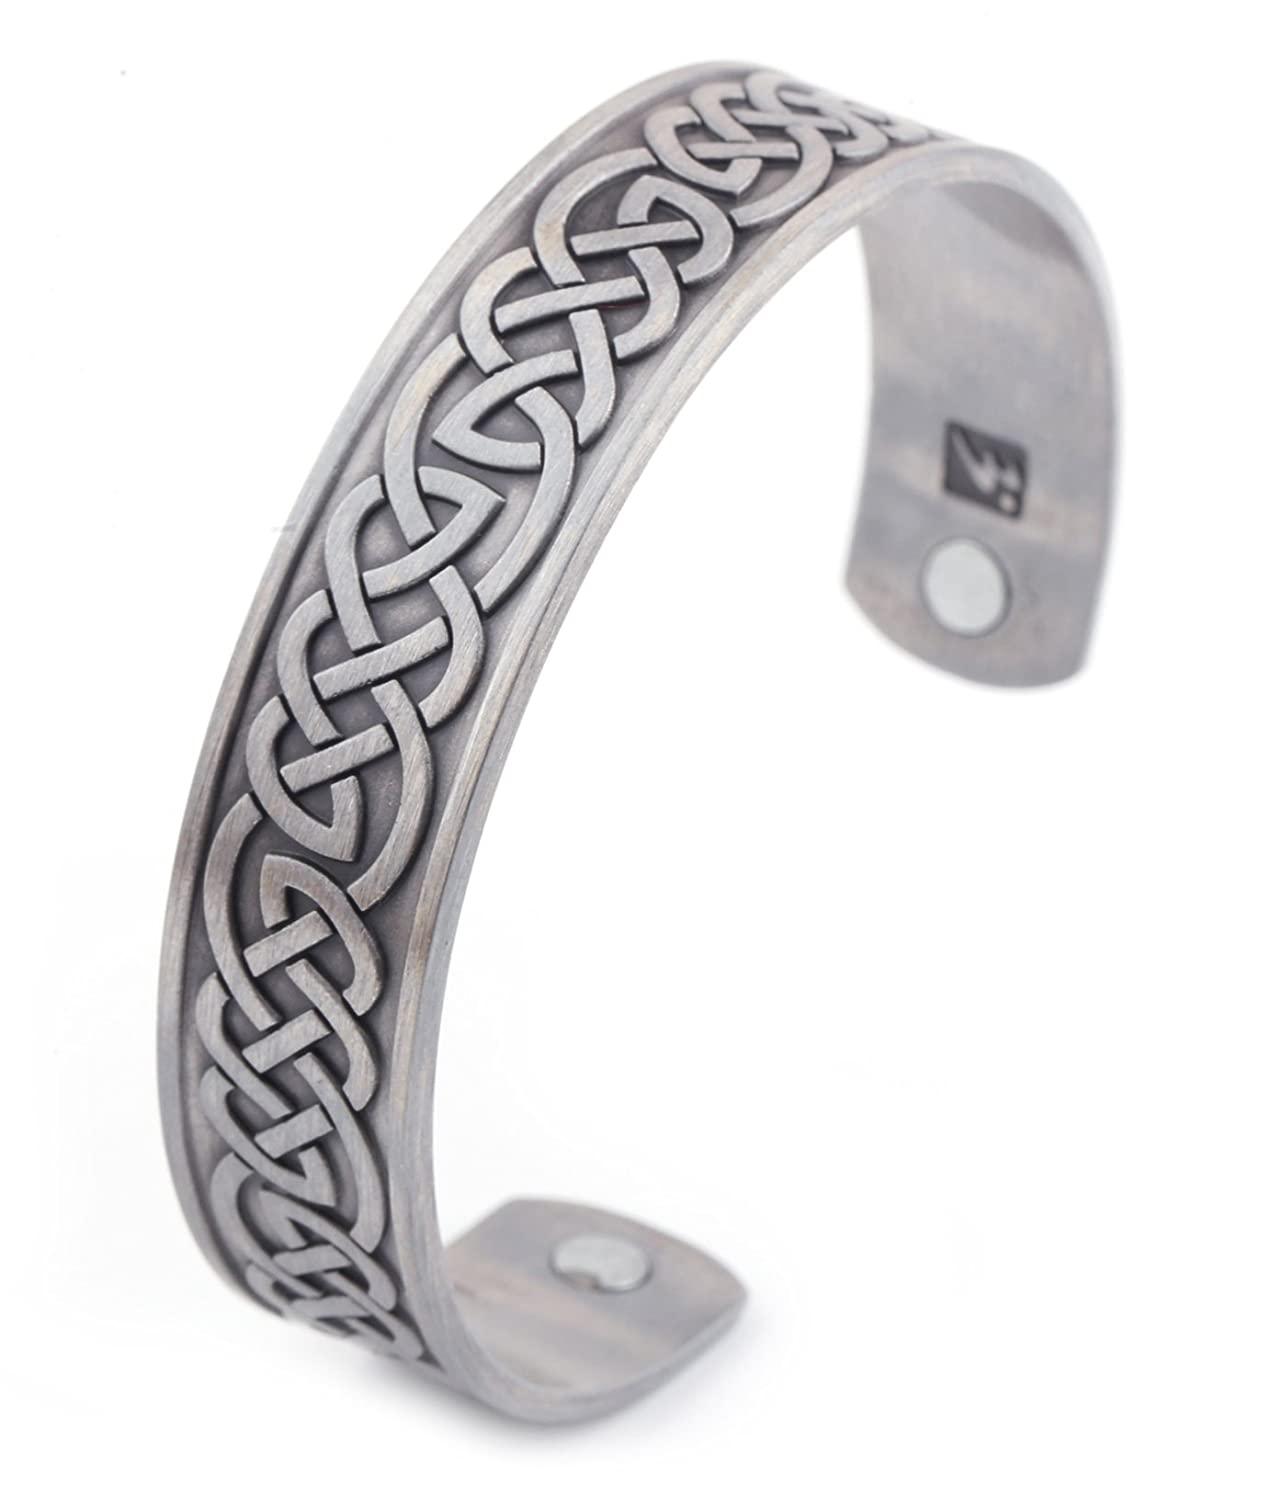 Health Care Magnetic Bracelet Men's Religious Celtic Knot Cuff Bangle Amulet Jewelry for Women Qiju